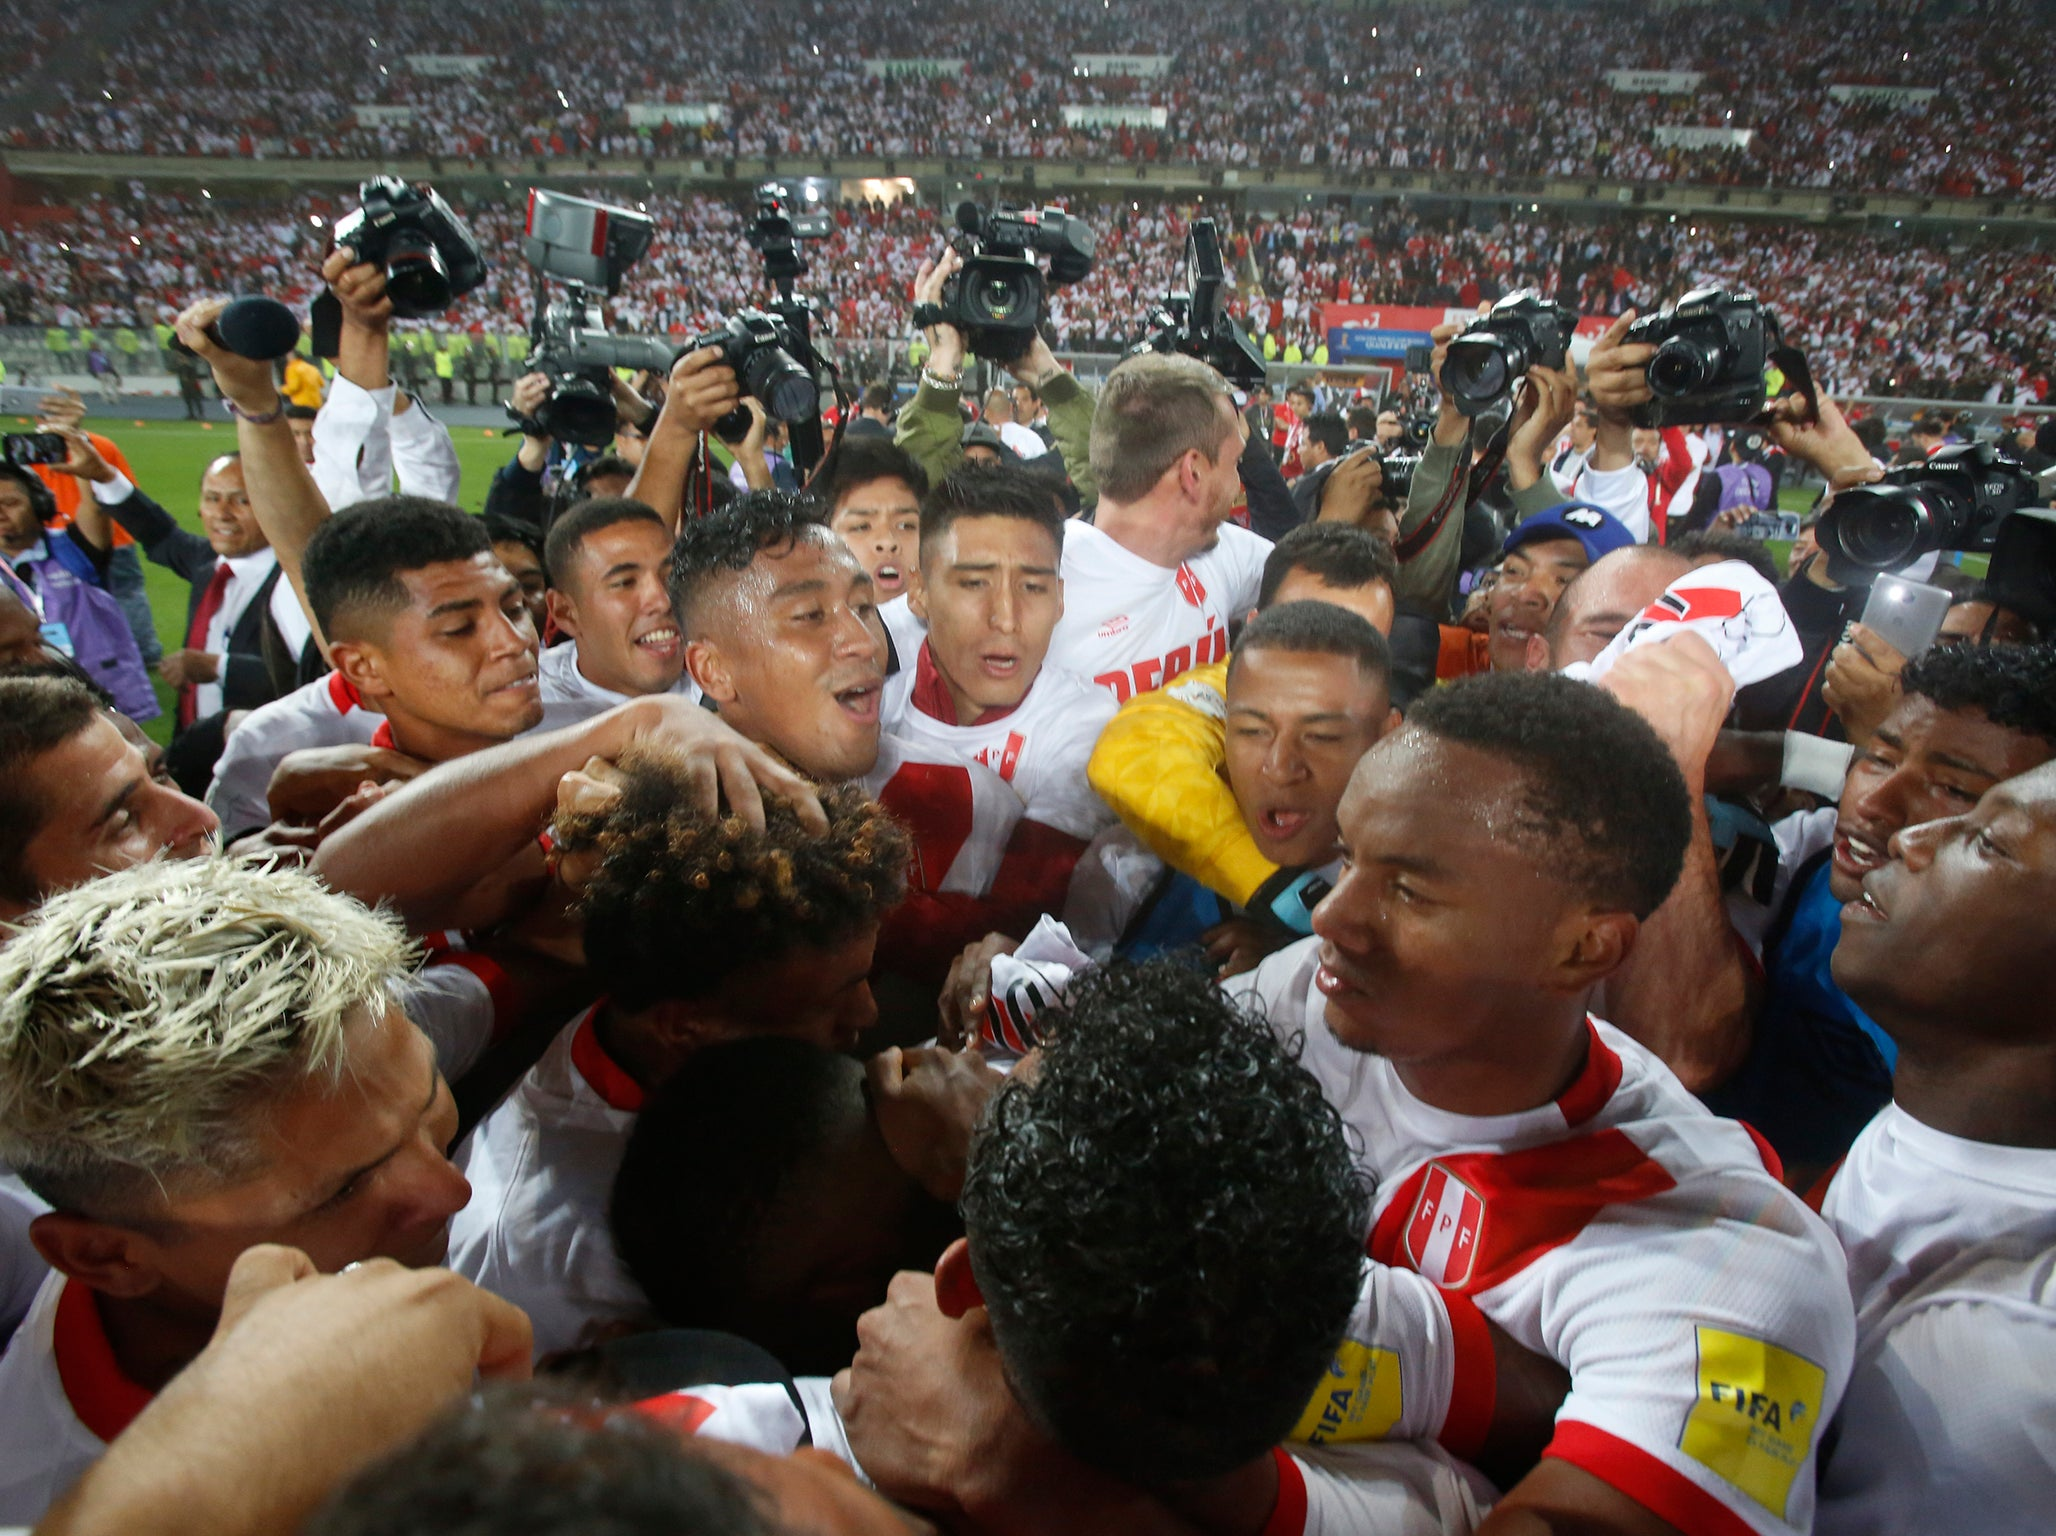 Peru beat New Zealand 2-0 to become the final nation to qualify for the 2018 Russia World Cup